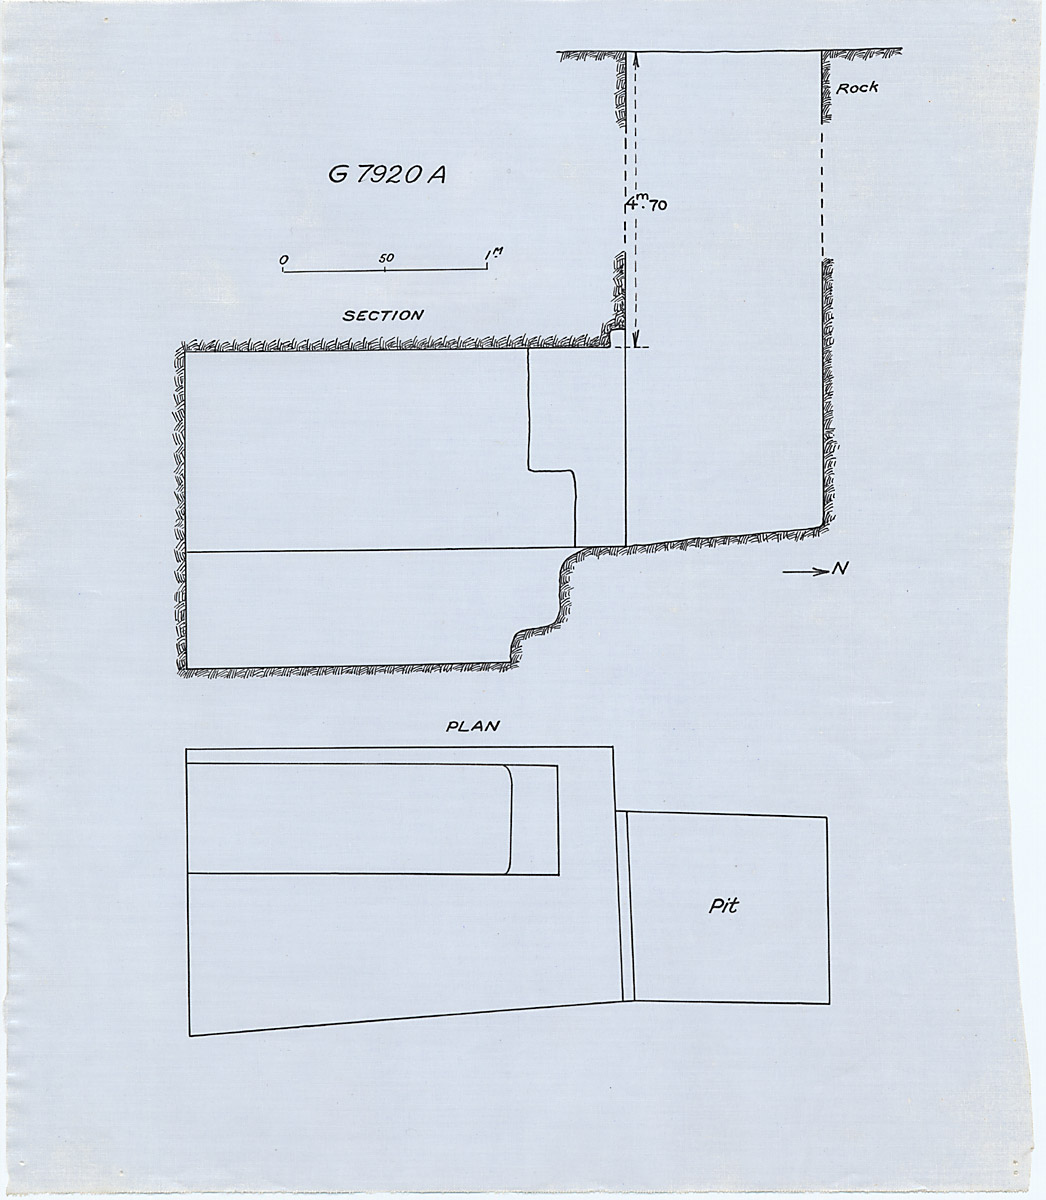 Maps and plans: G 7920, Shaft A